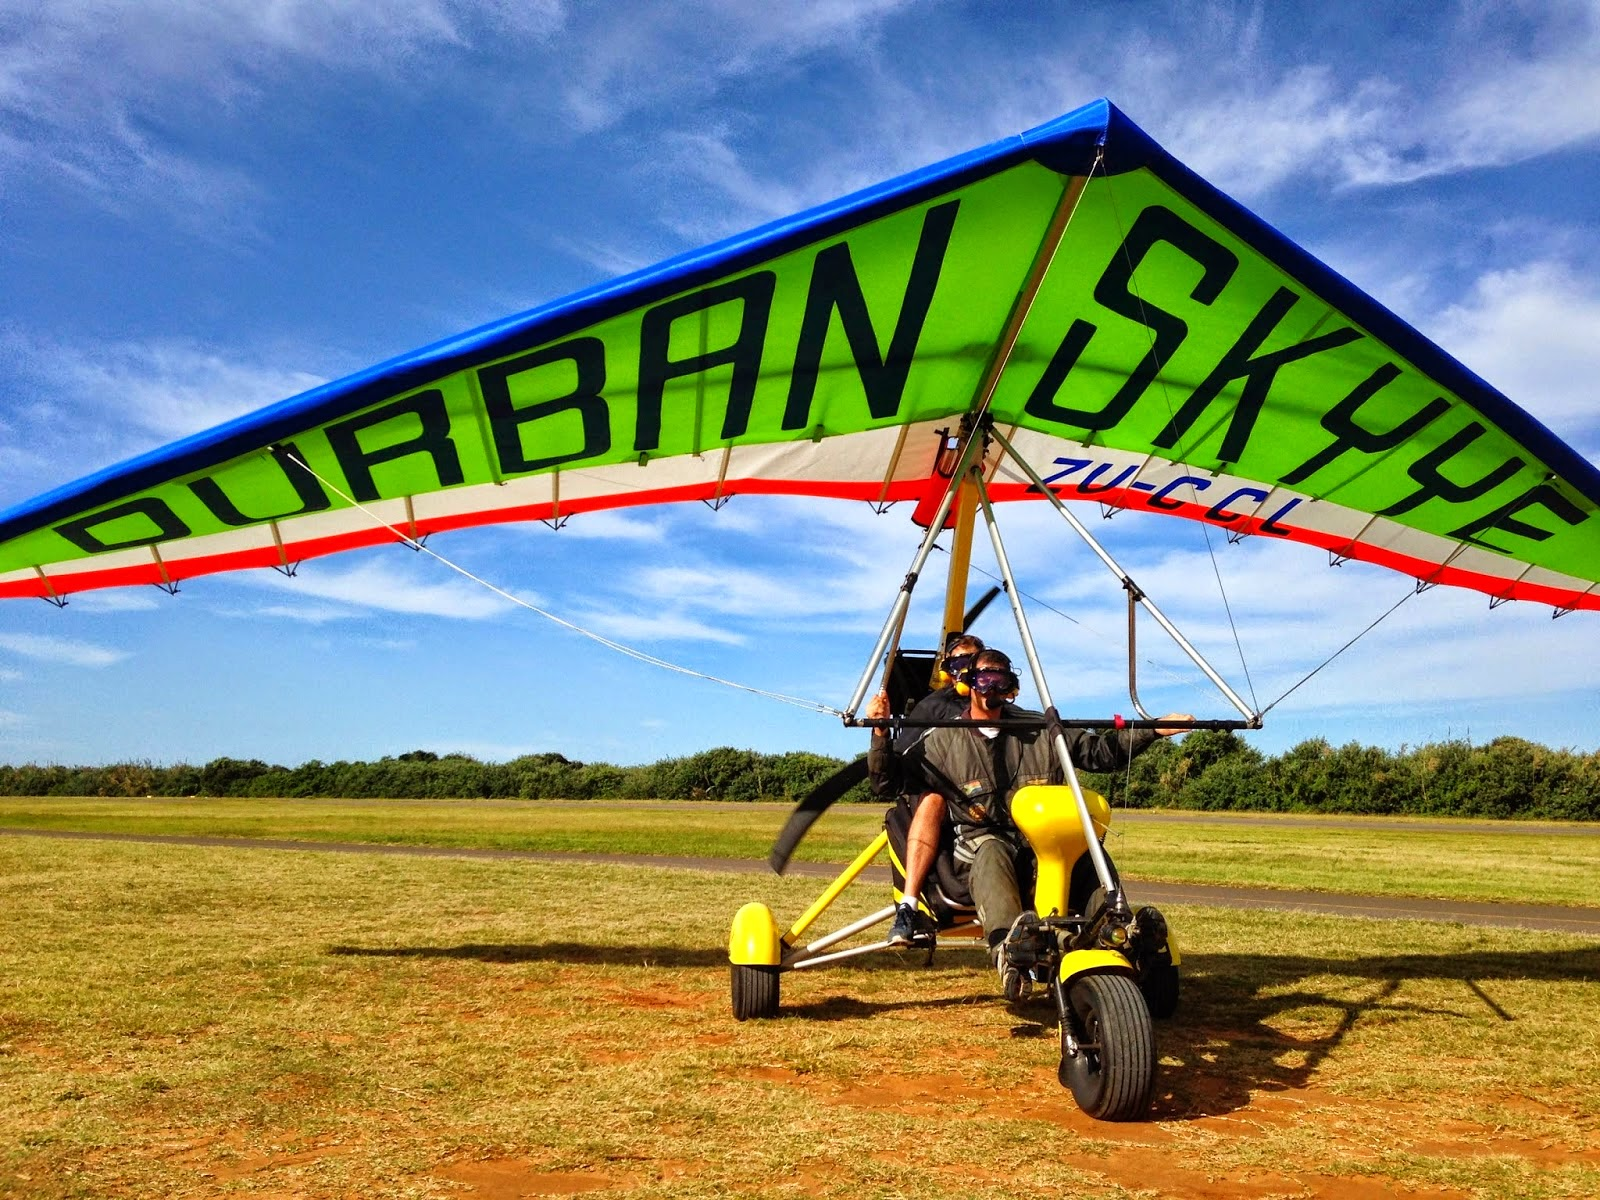 Our Flight School microlight